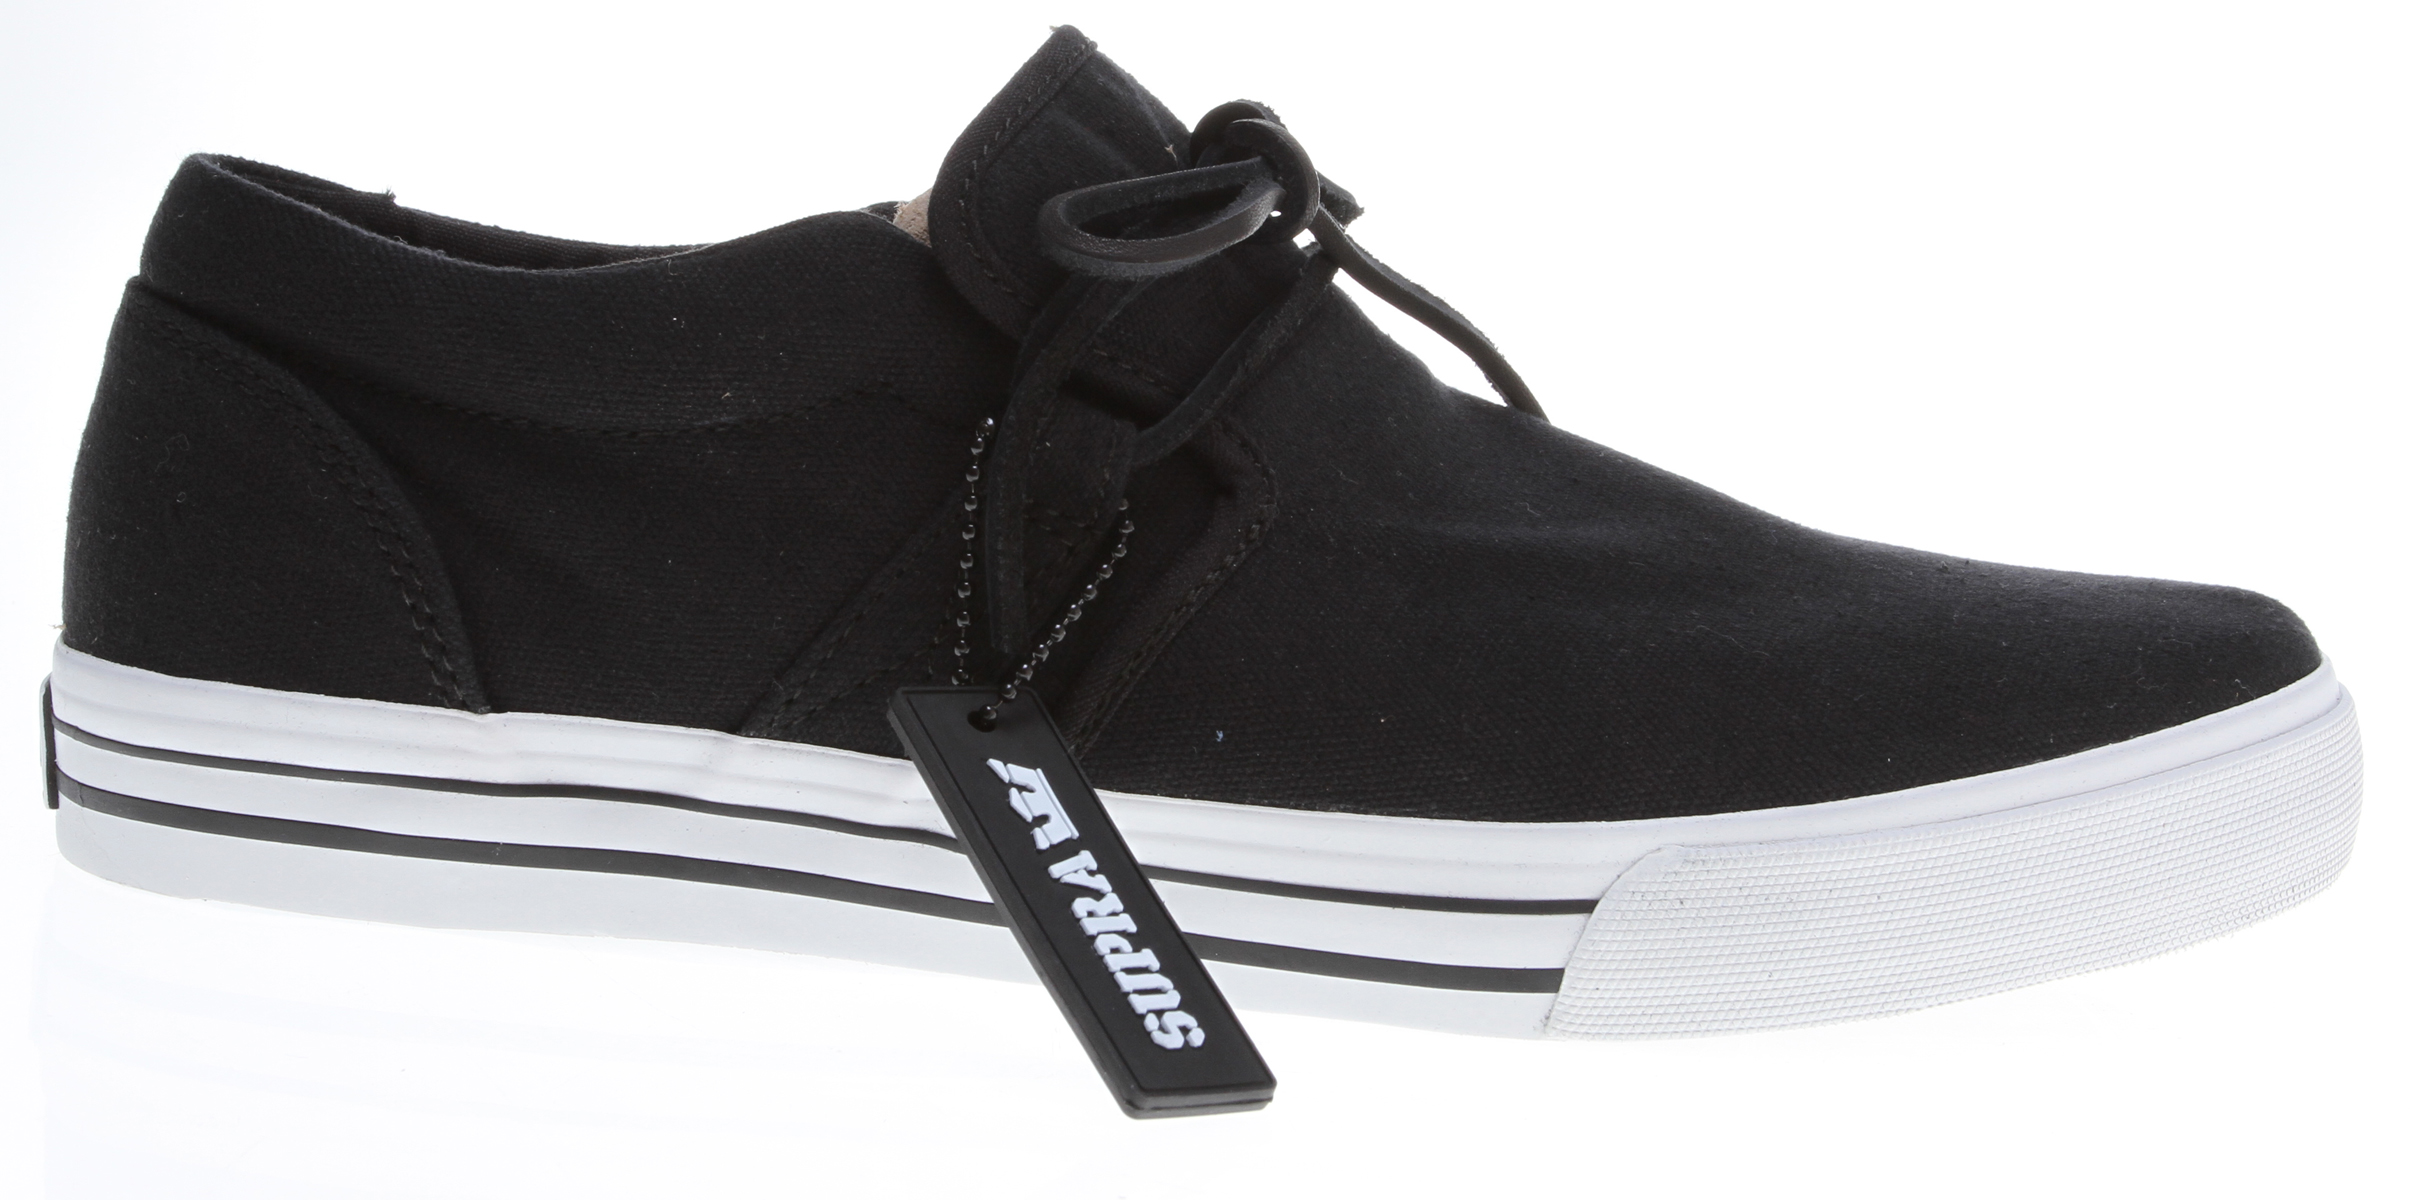 Skateboard Key Features of the Supra Cuban Skate Shoes: Ultra lightweight. Breathable. Flexible. Eco friendly. Does not require harmful adhesives. Will not lose elasticity under compression. When molded into midsole, provides unmatched cushioning and comfort. - $41.95